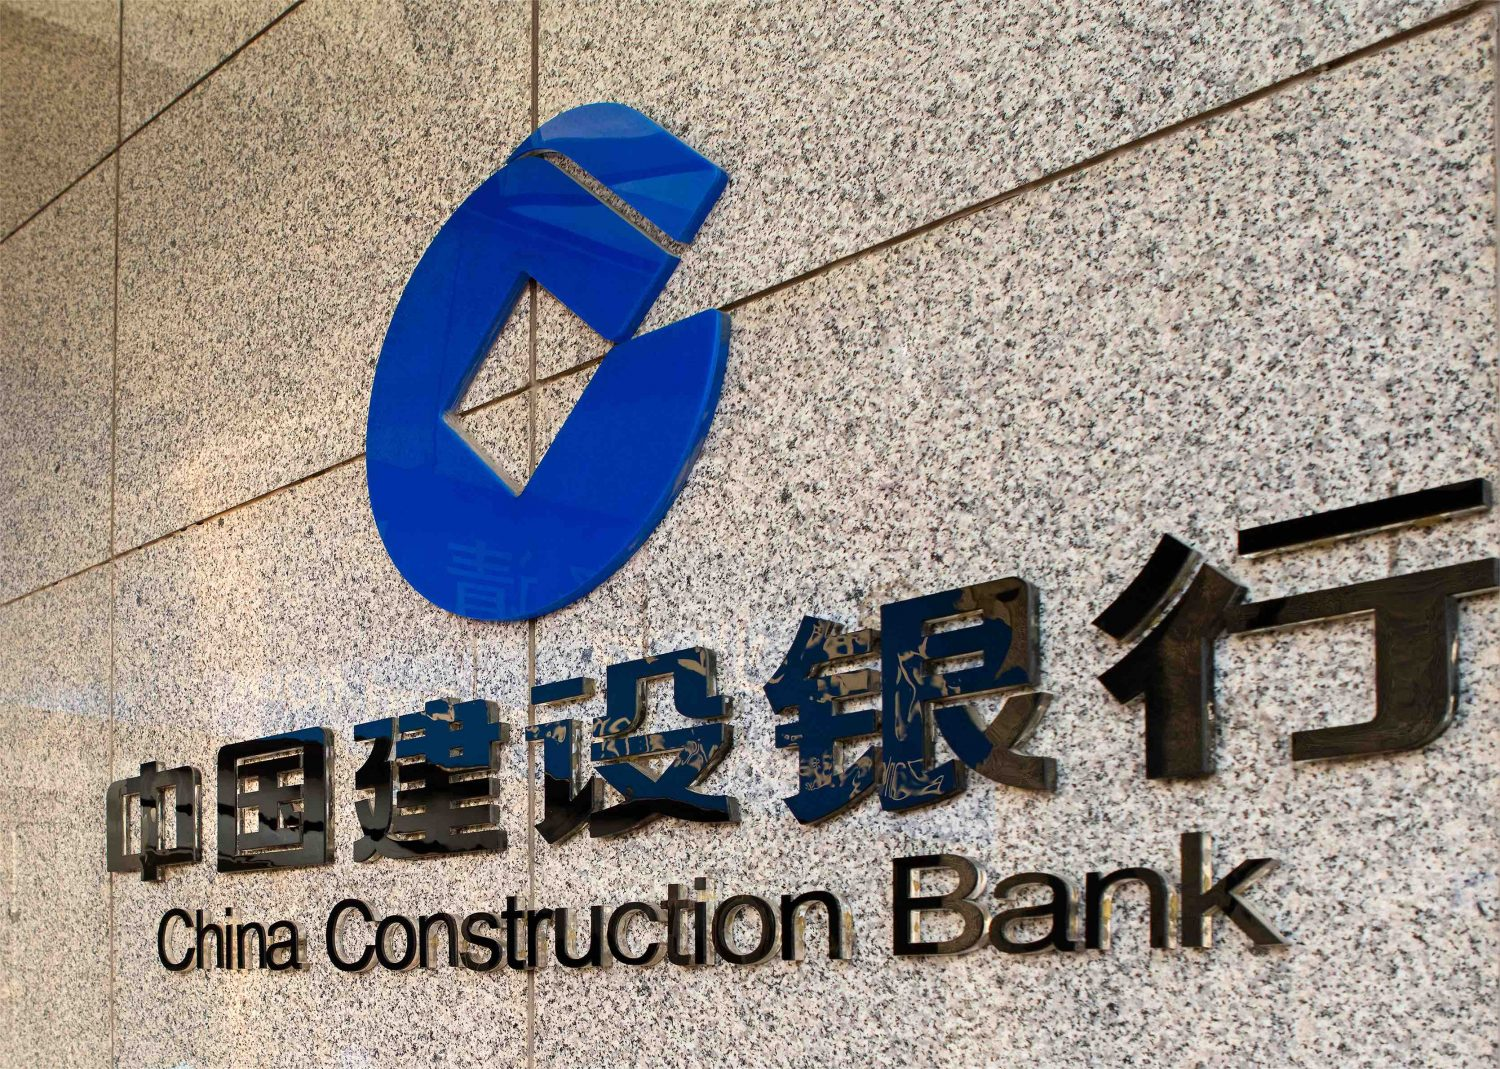 Chinese Banking Giant CCB Expands Blockchain Platform as Volume Breaks $53 Billion - CoinDesk